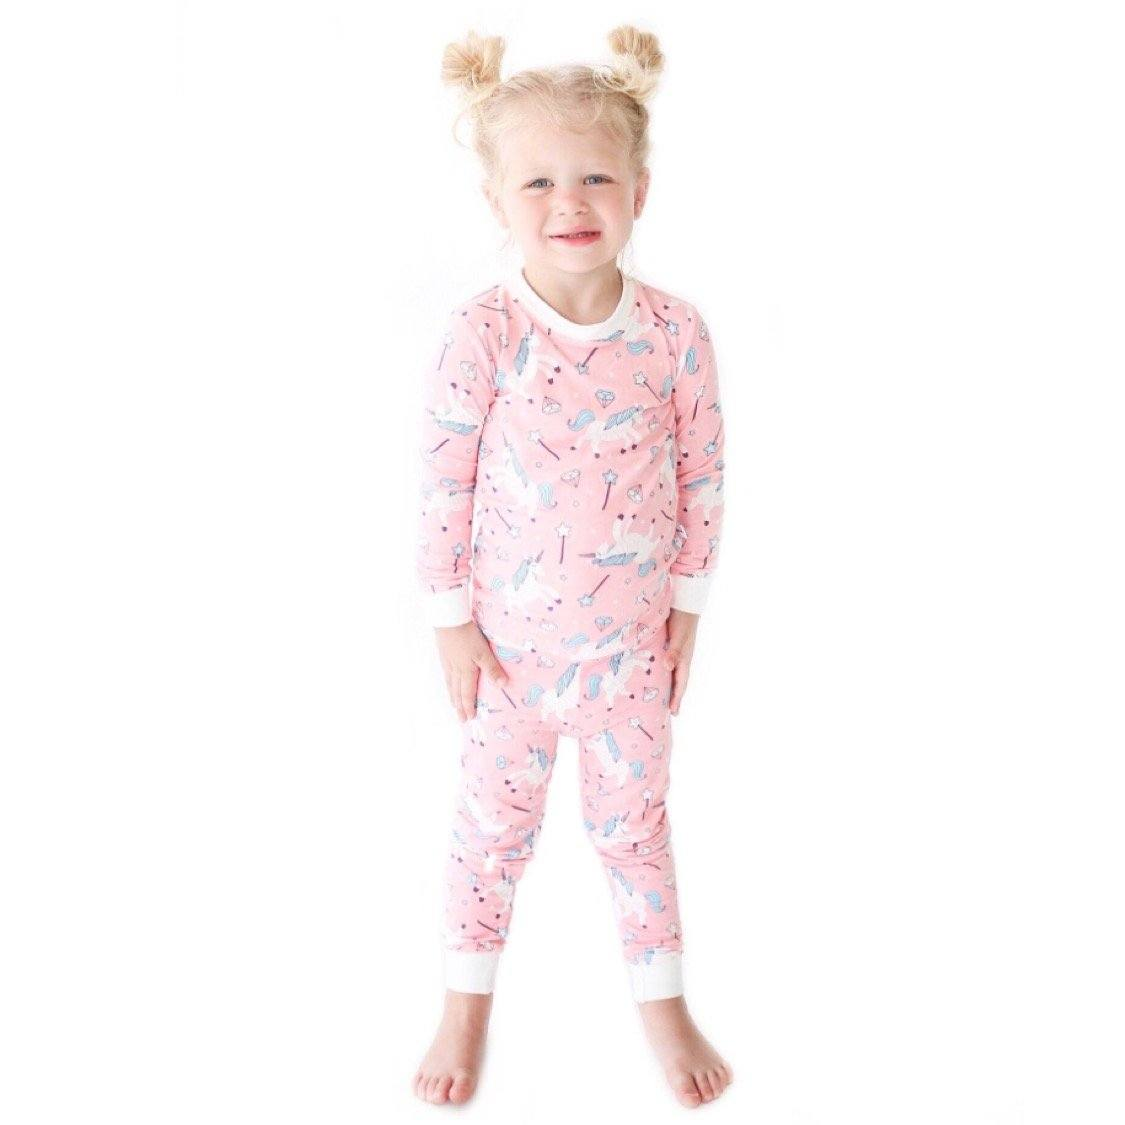 Little Sleepies - Unicorns Baby & Toddler Two-Piece Bamboo Pajama Set Pajamas Little Sleepies